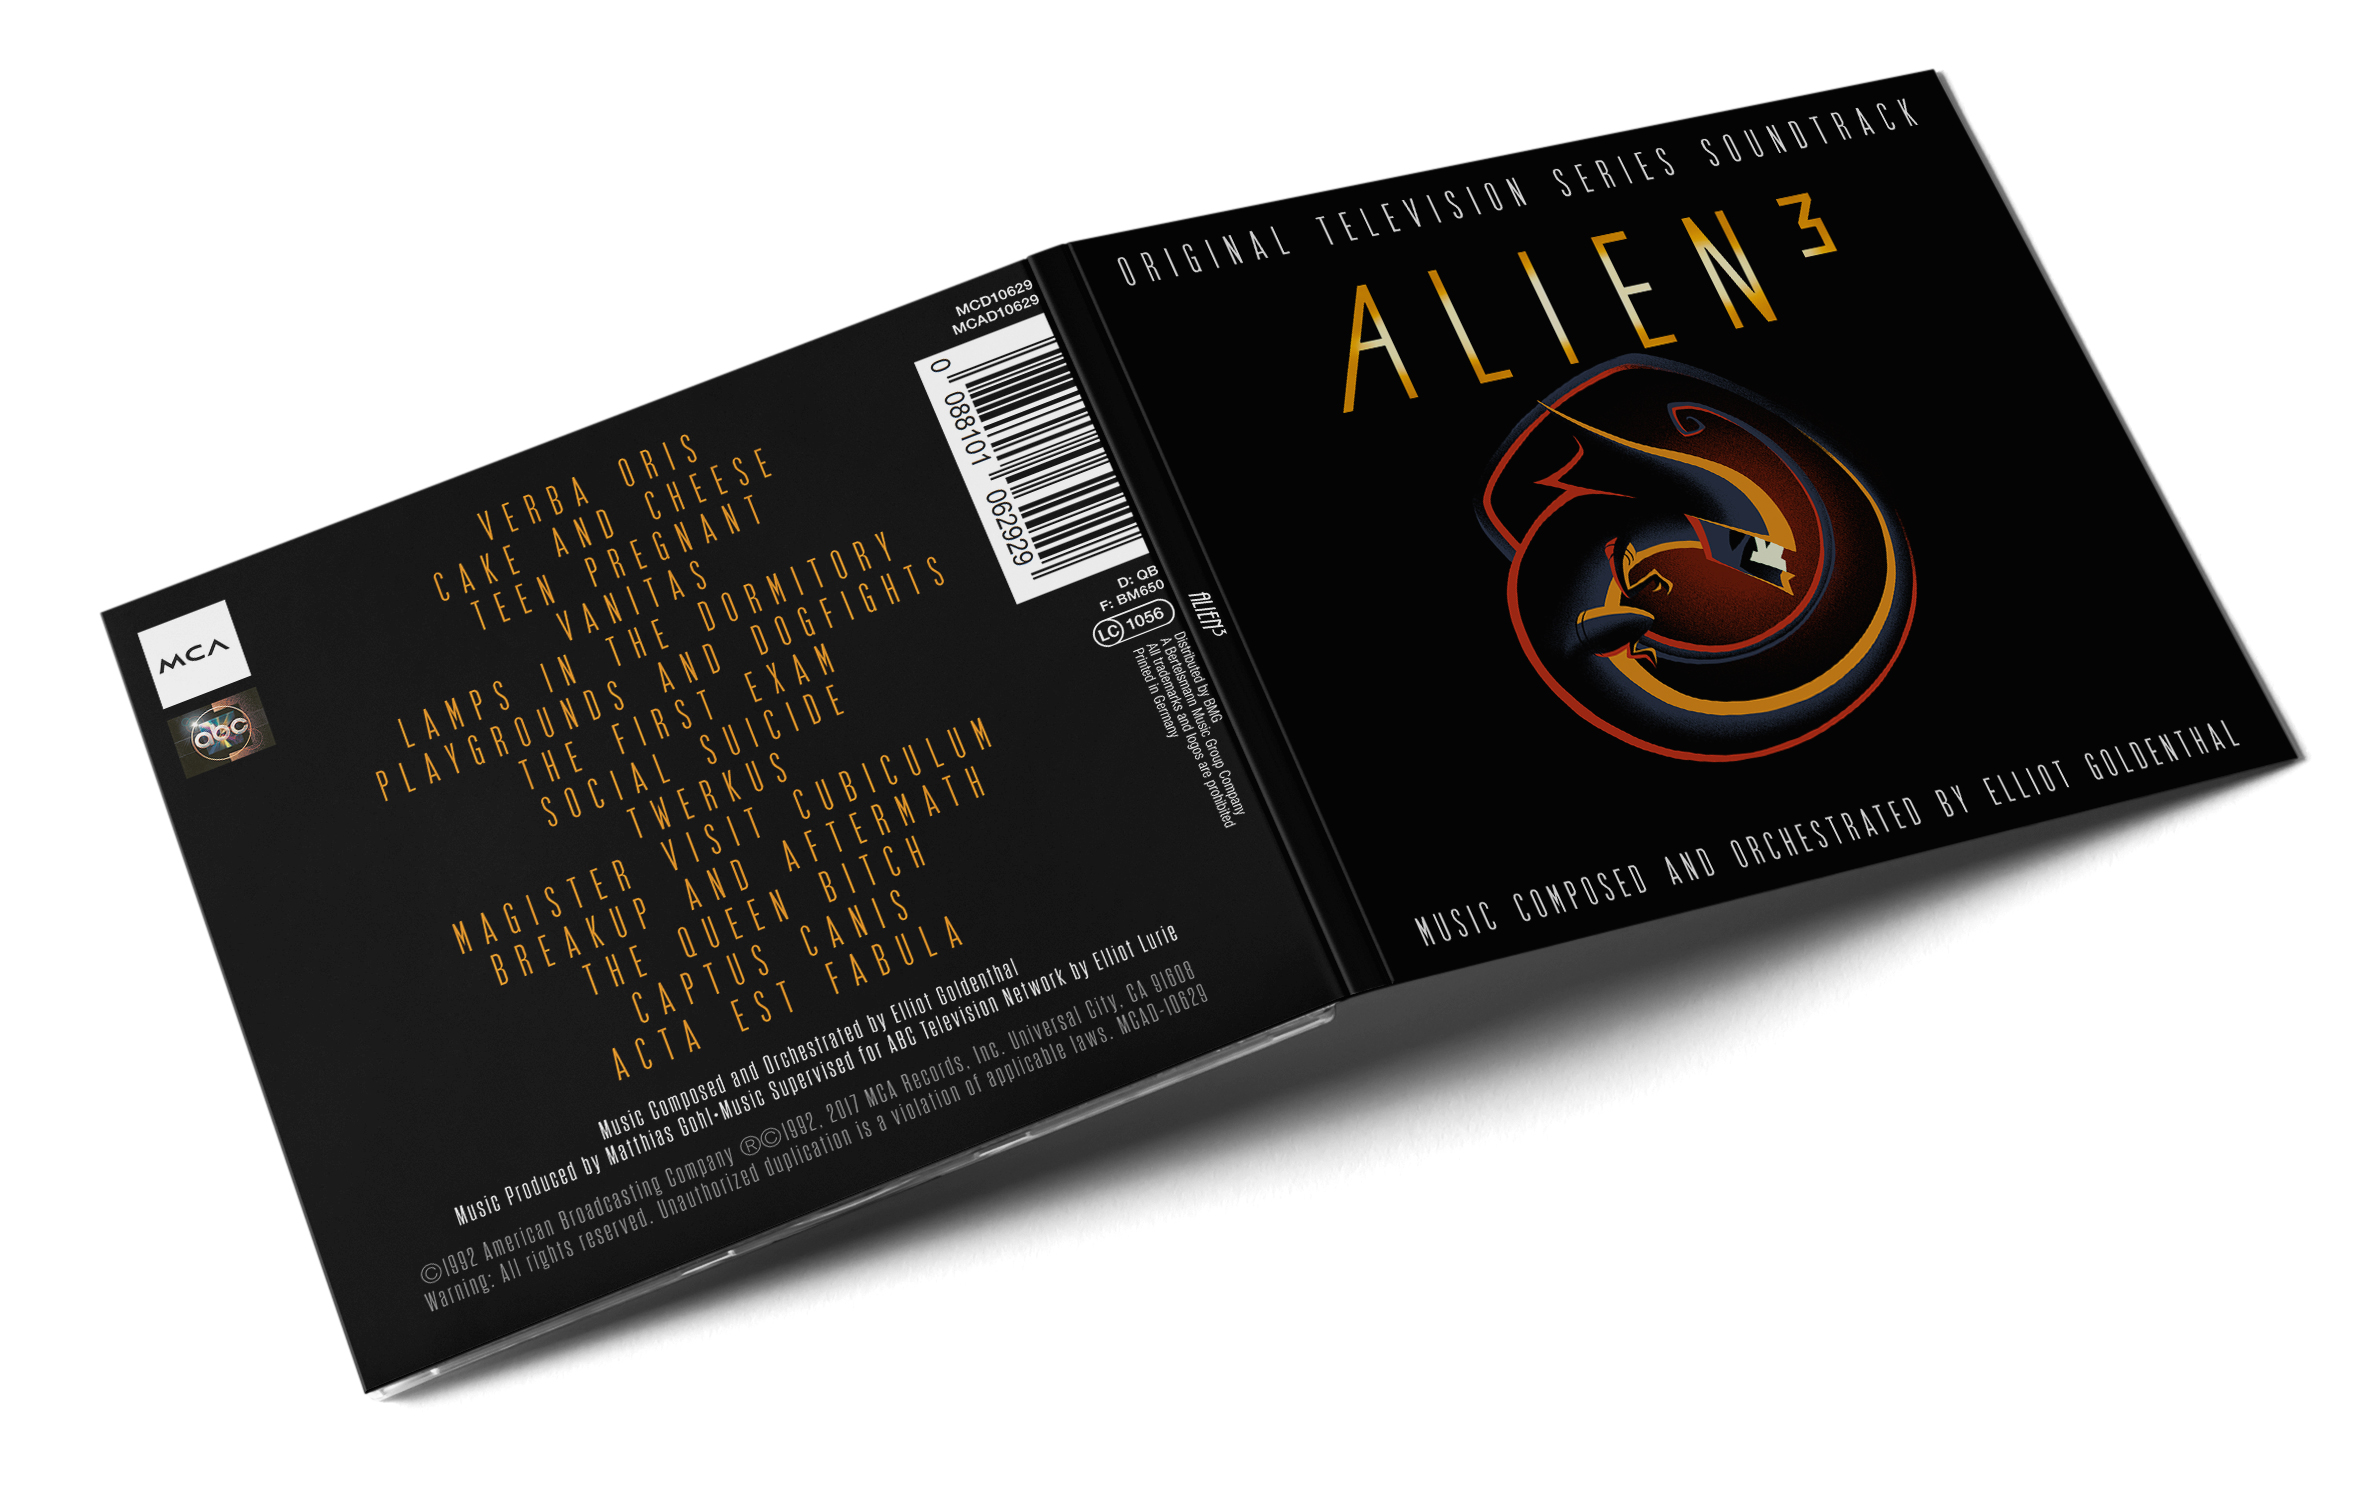 taa_backcover_alien3_mockup.jpg